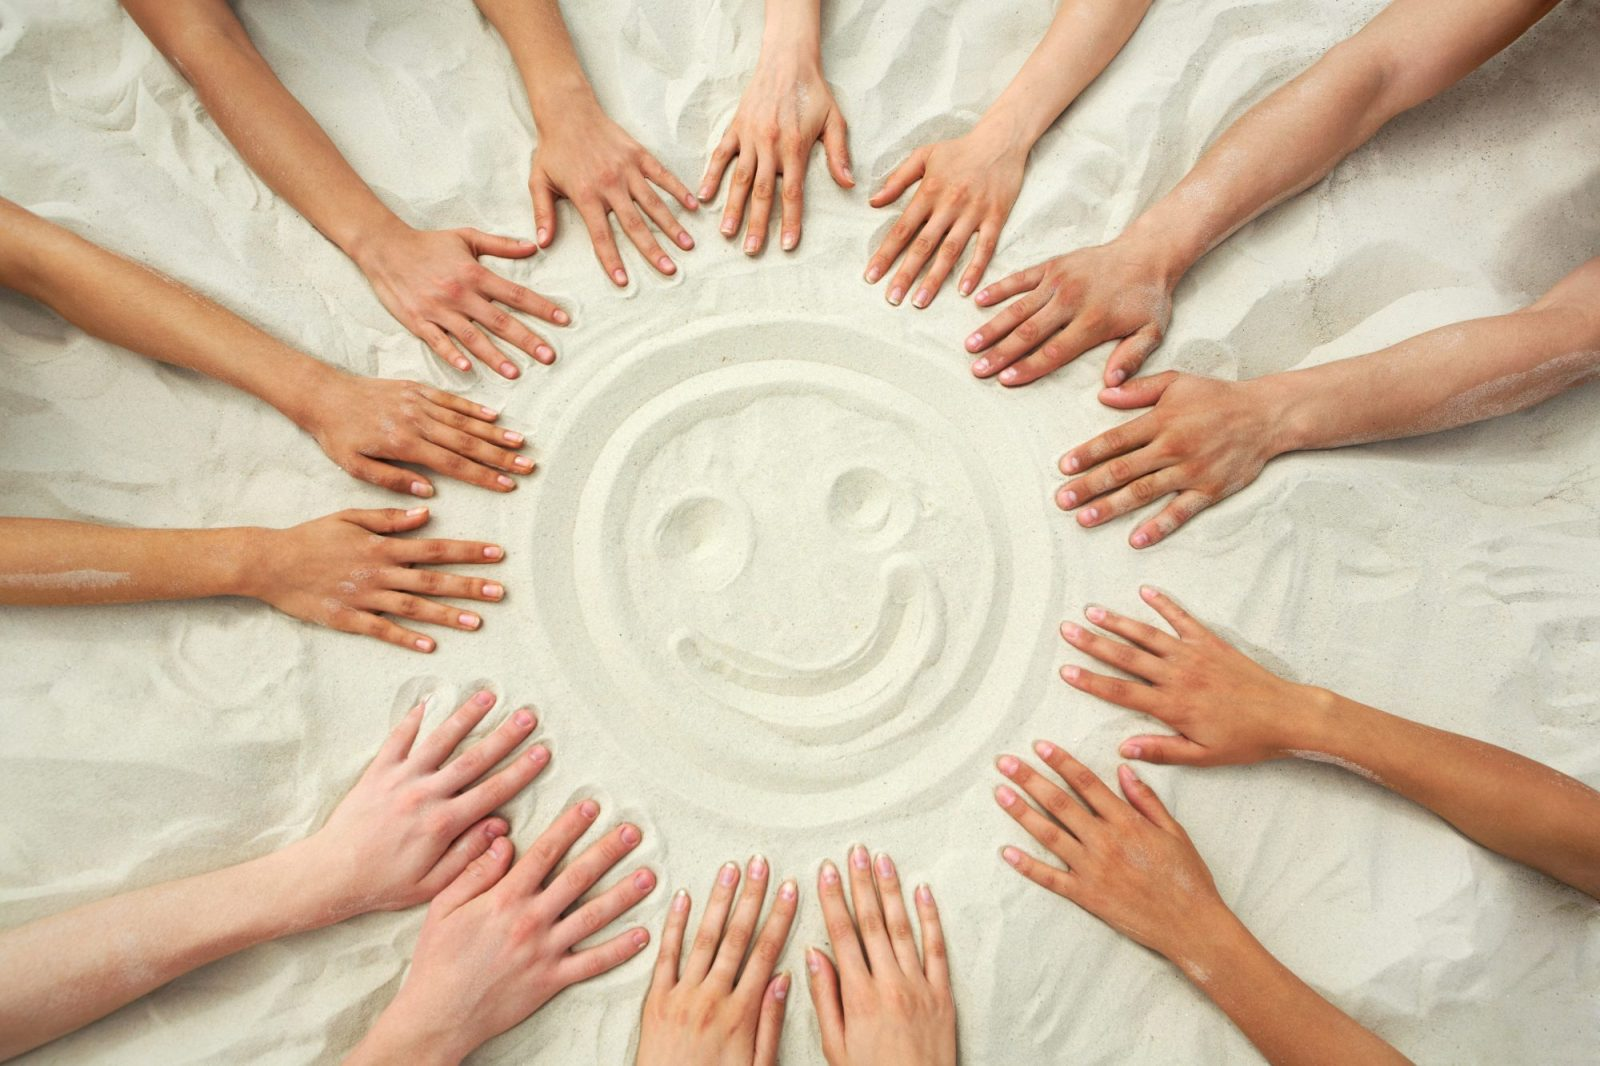 Photo Of Smiling Face Hands Painting On Sand Surrounded Human Hands